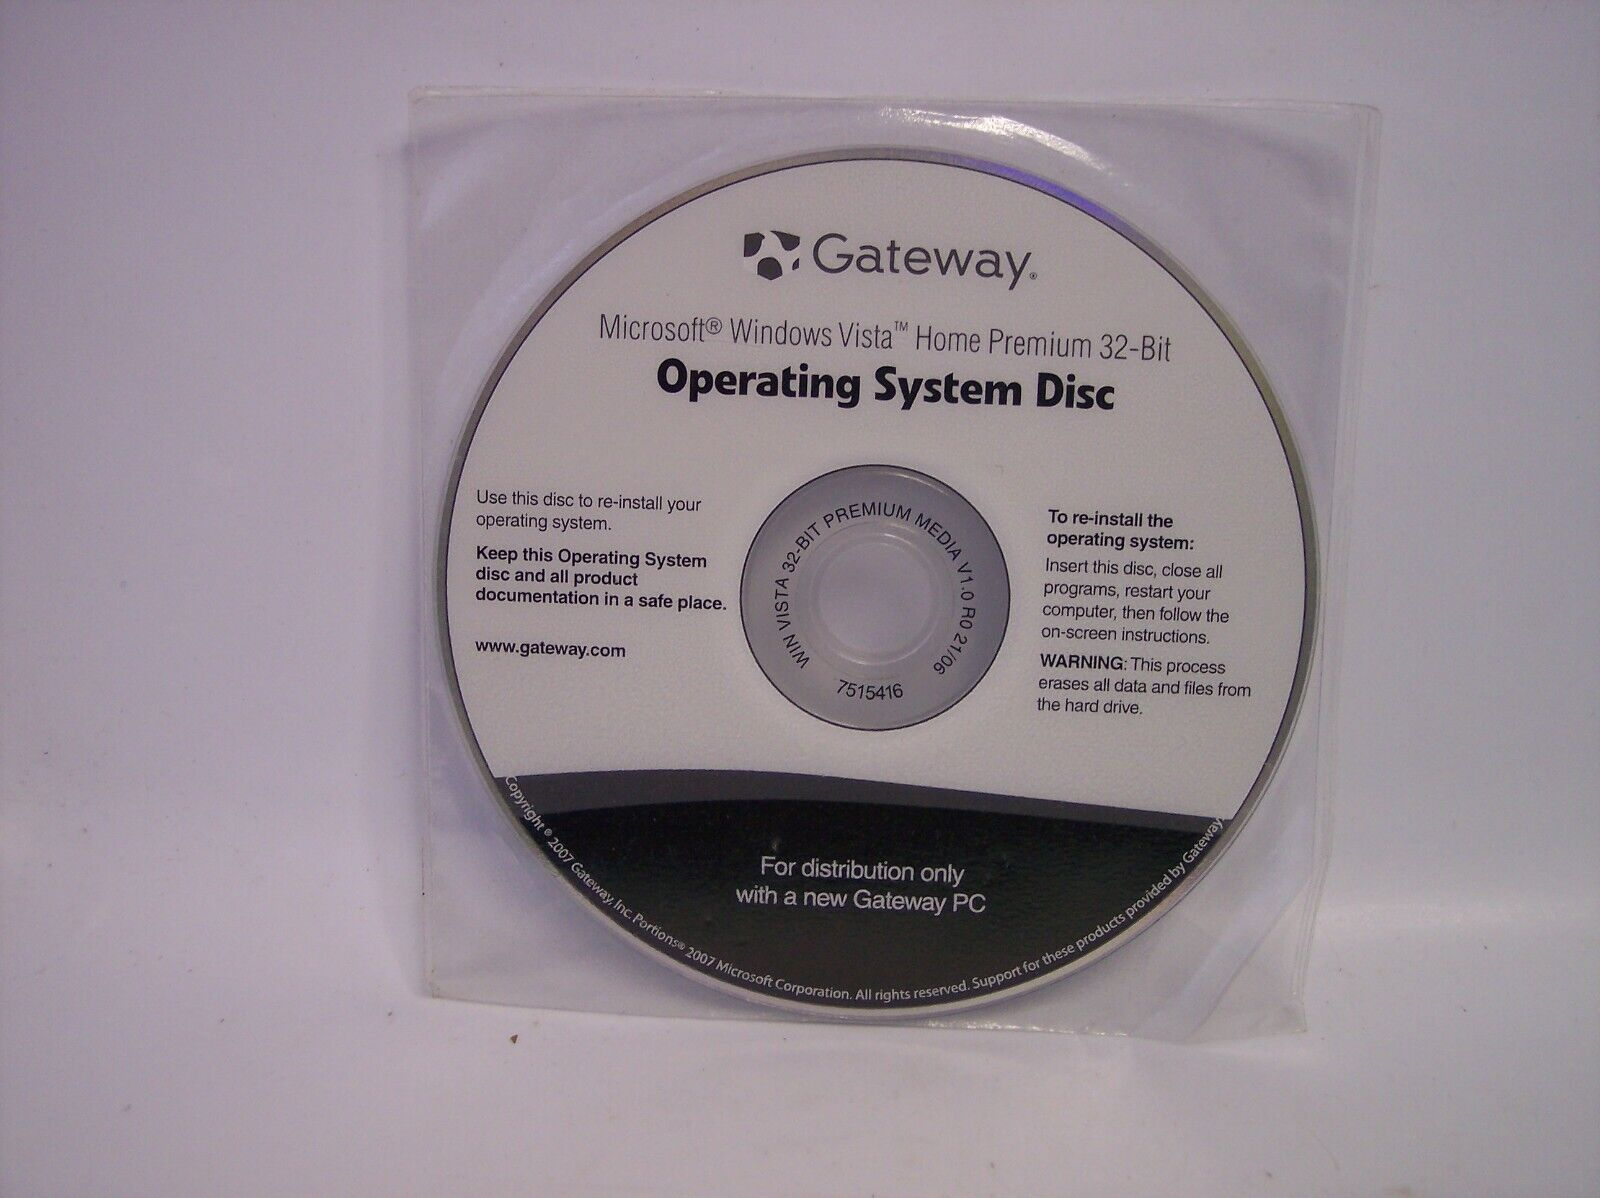 GATEWAY 7515416 OPERATING SYSTEM DISC